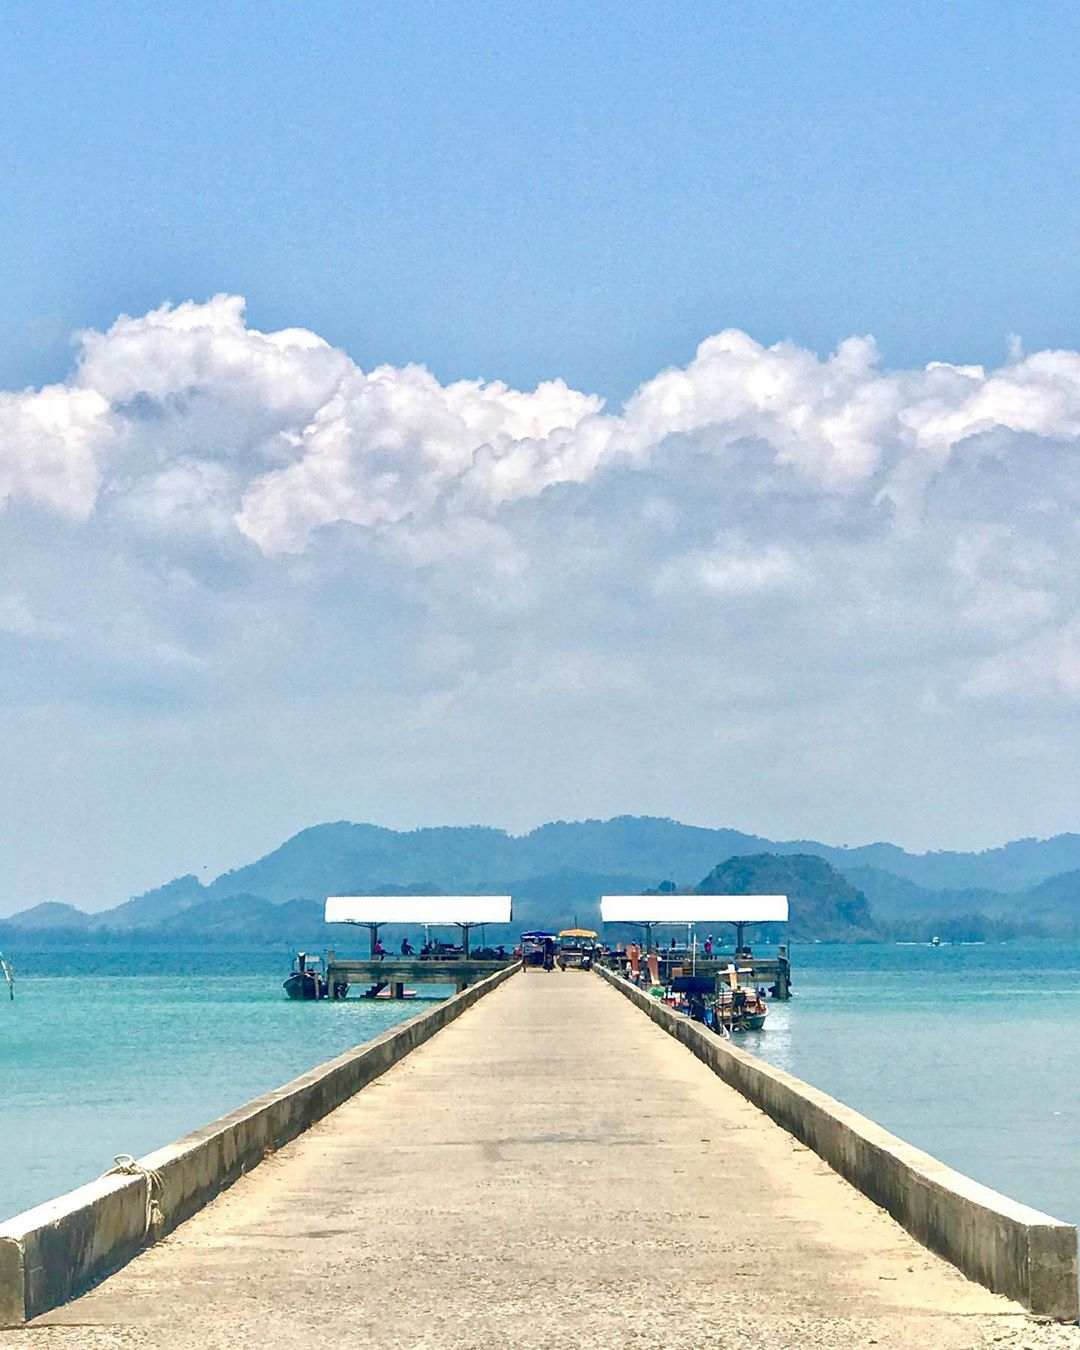 The pier of Koh Mook